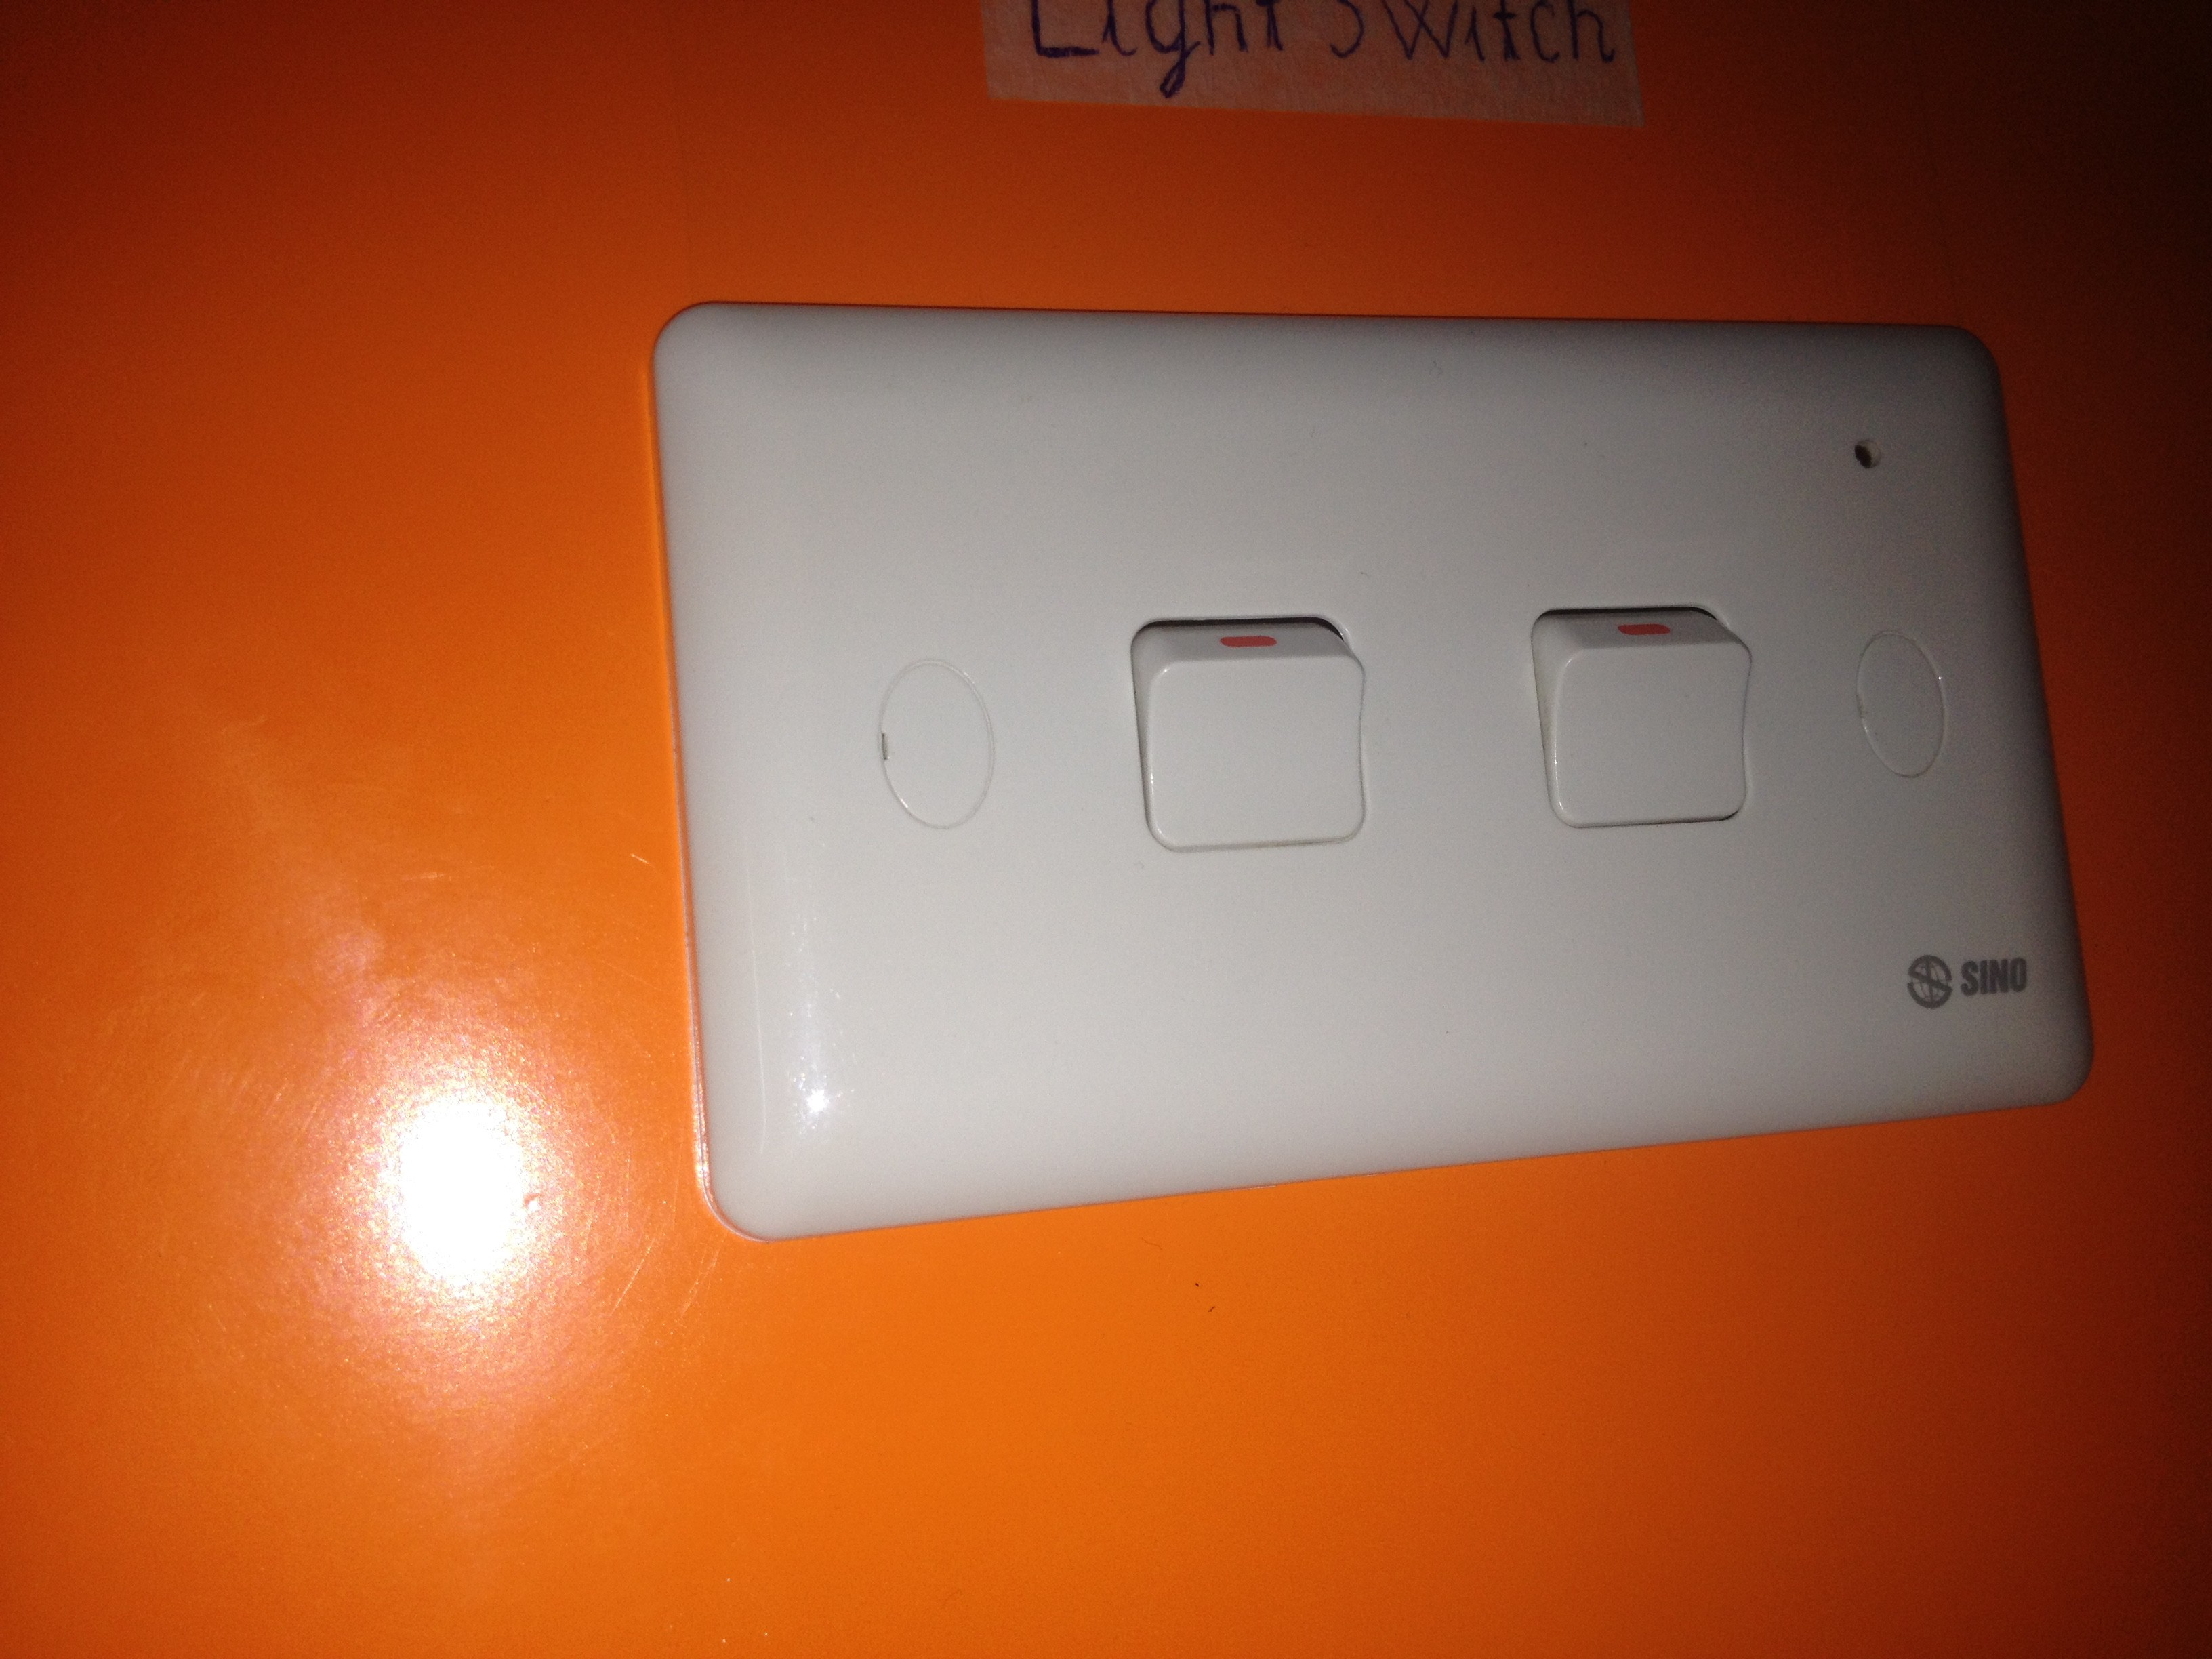 Light Switch Precarious Details 3 Problem Video